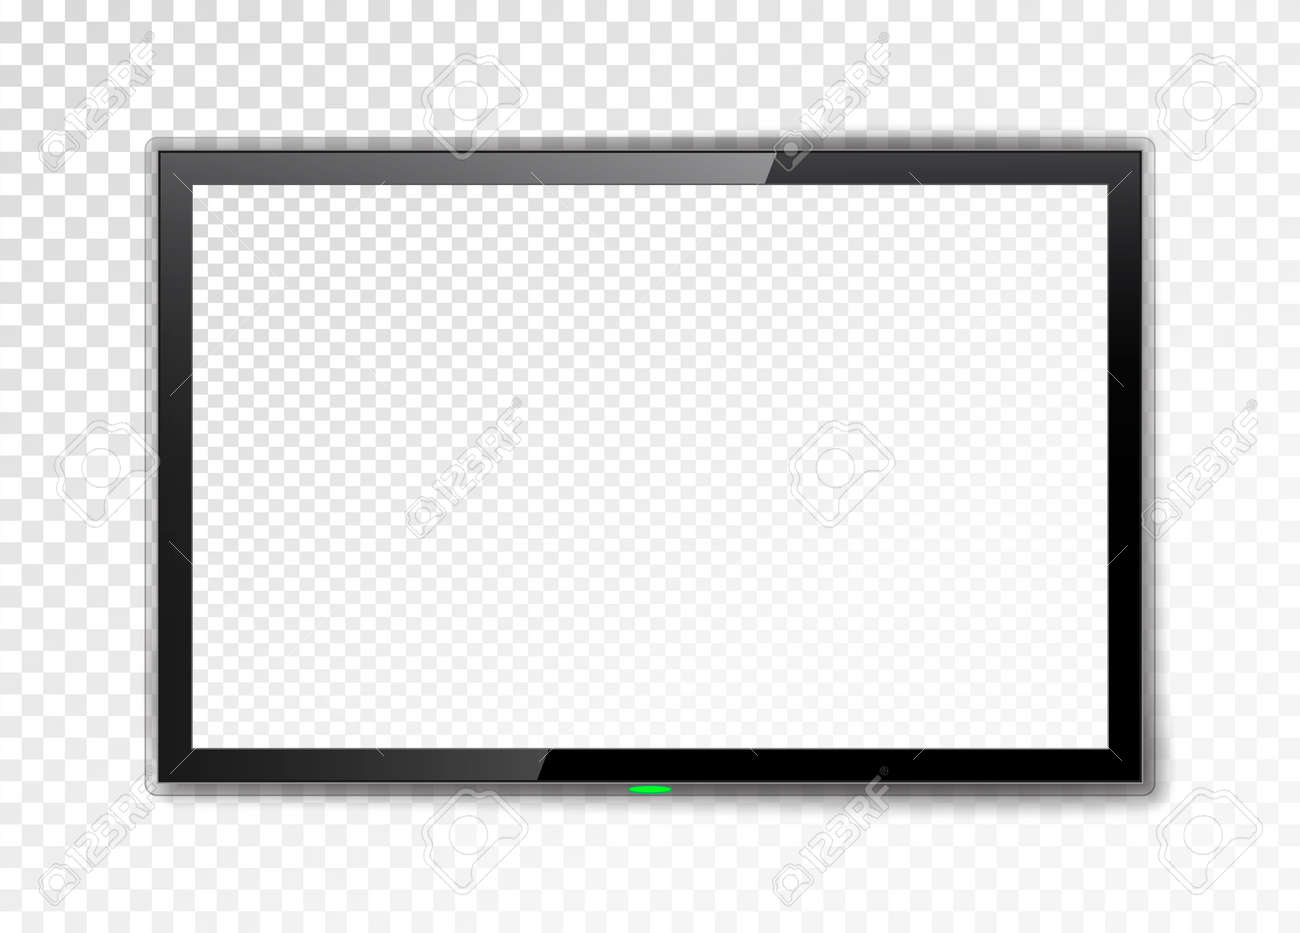 Realistic TV screen. Empty led monitor isolated on a transparent background. Vector illustration. - 93895958